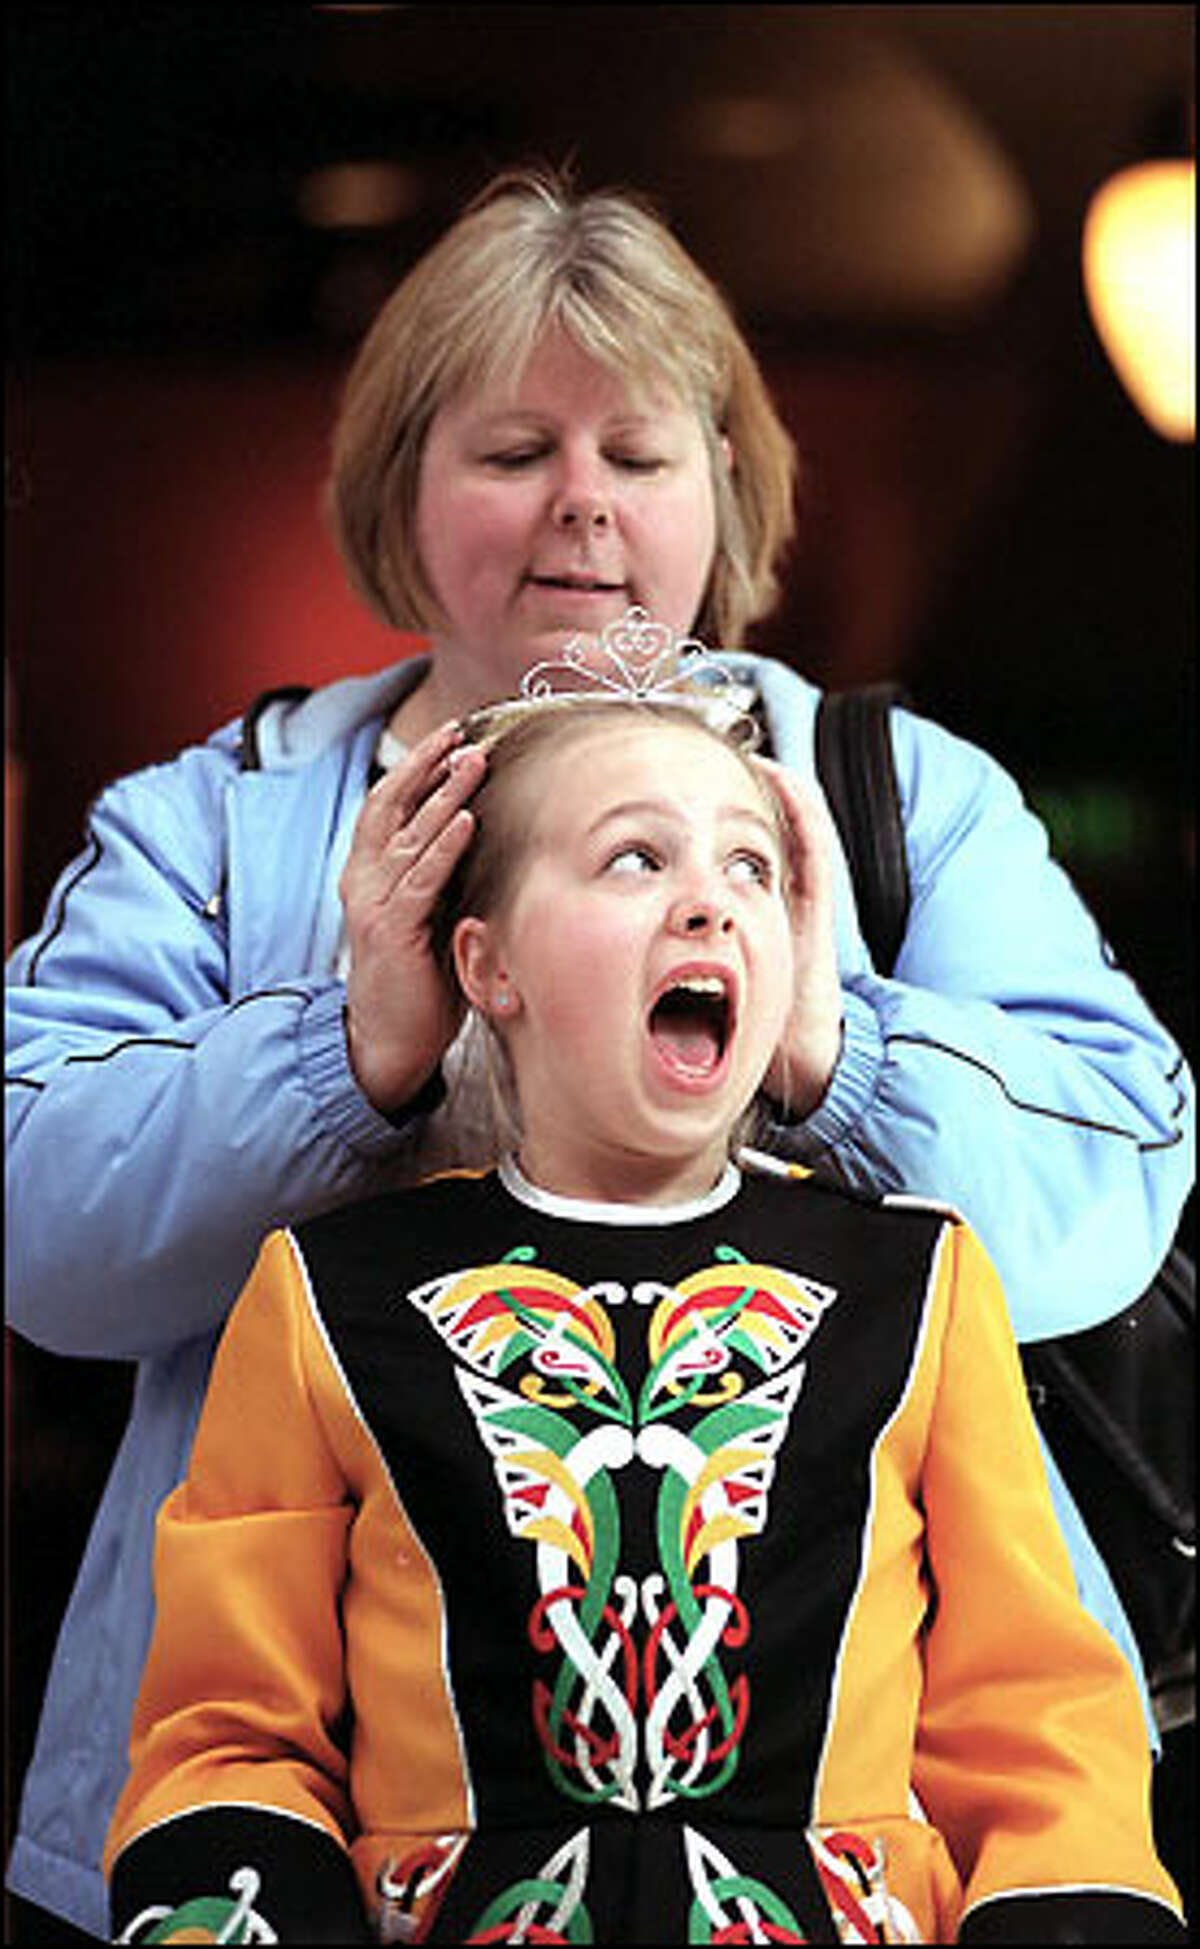 Shannon Malnes, 9, teases mom Carol that her crown, part of an Irish dance costume, is tangled - it was fine. Shannon is part of Comerford School of Irish Dance.